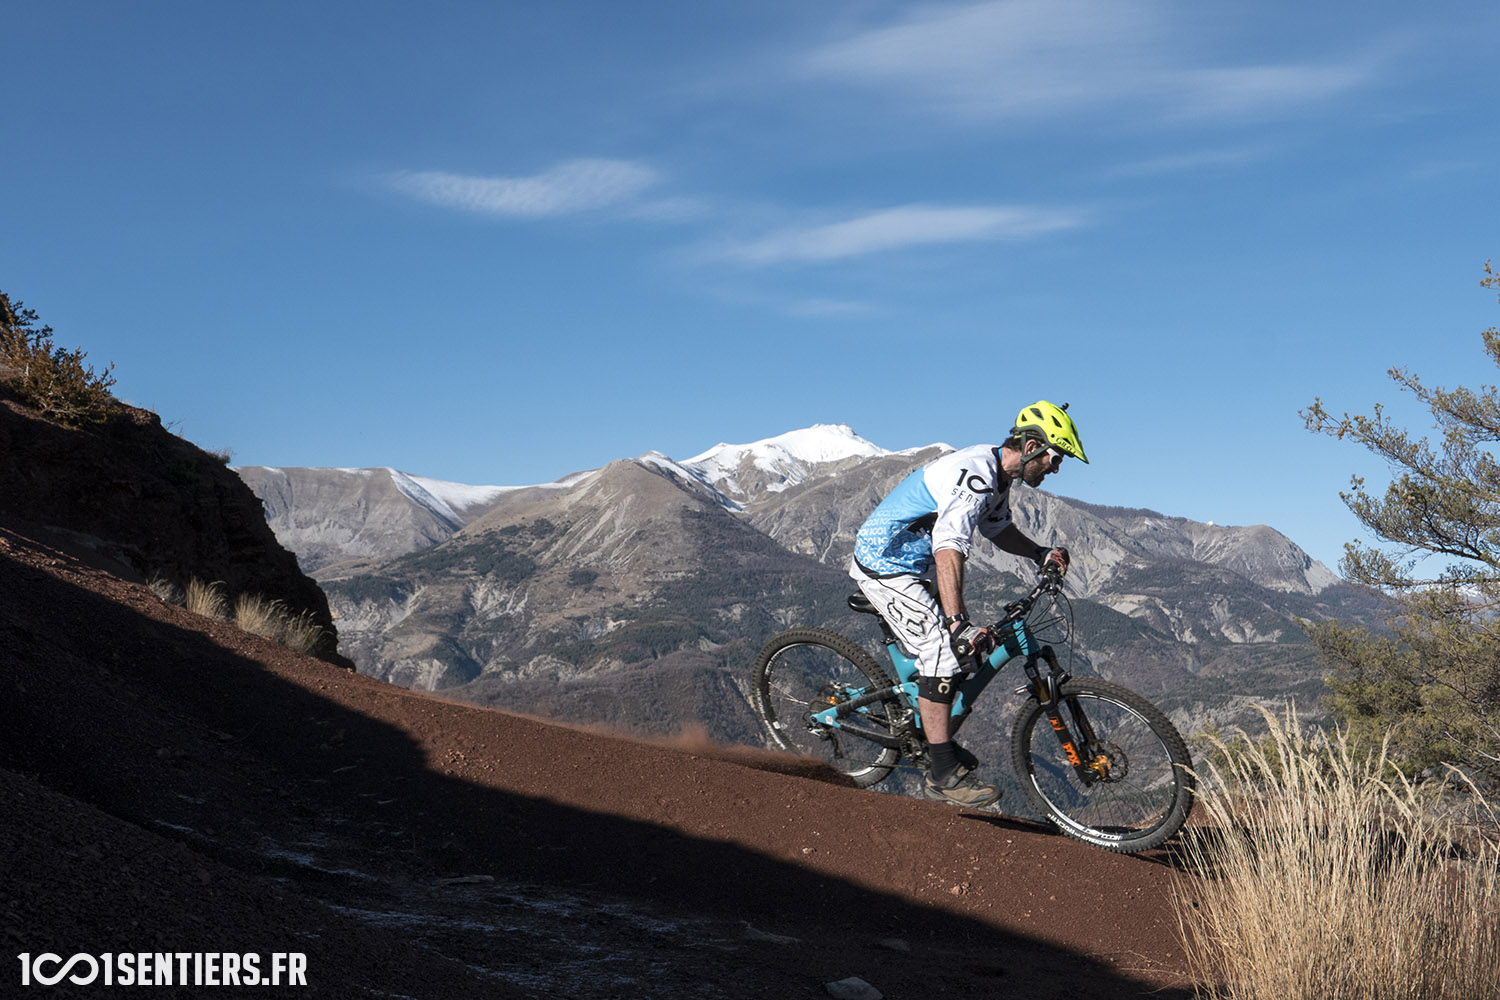 1001sentiers-session-enduro-alpes-maritimes-vtt-p1100235